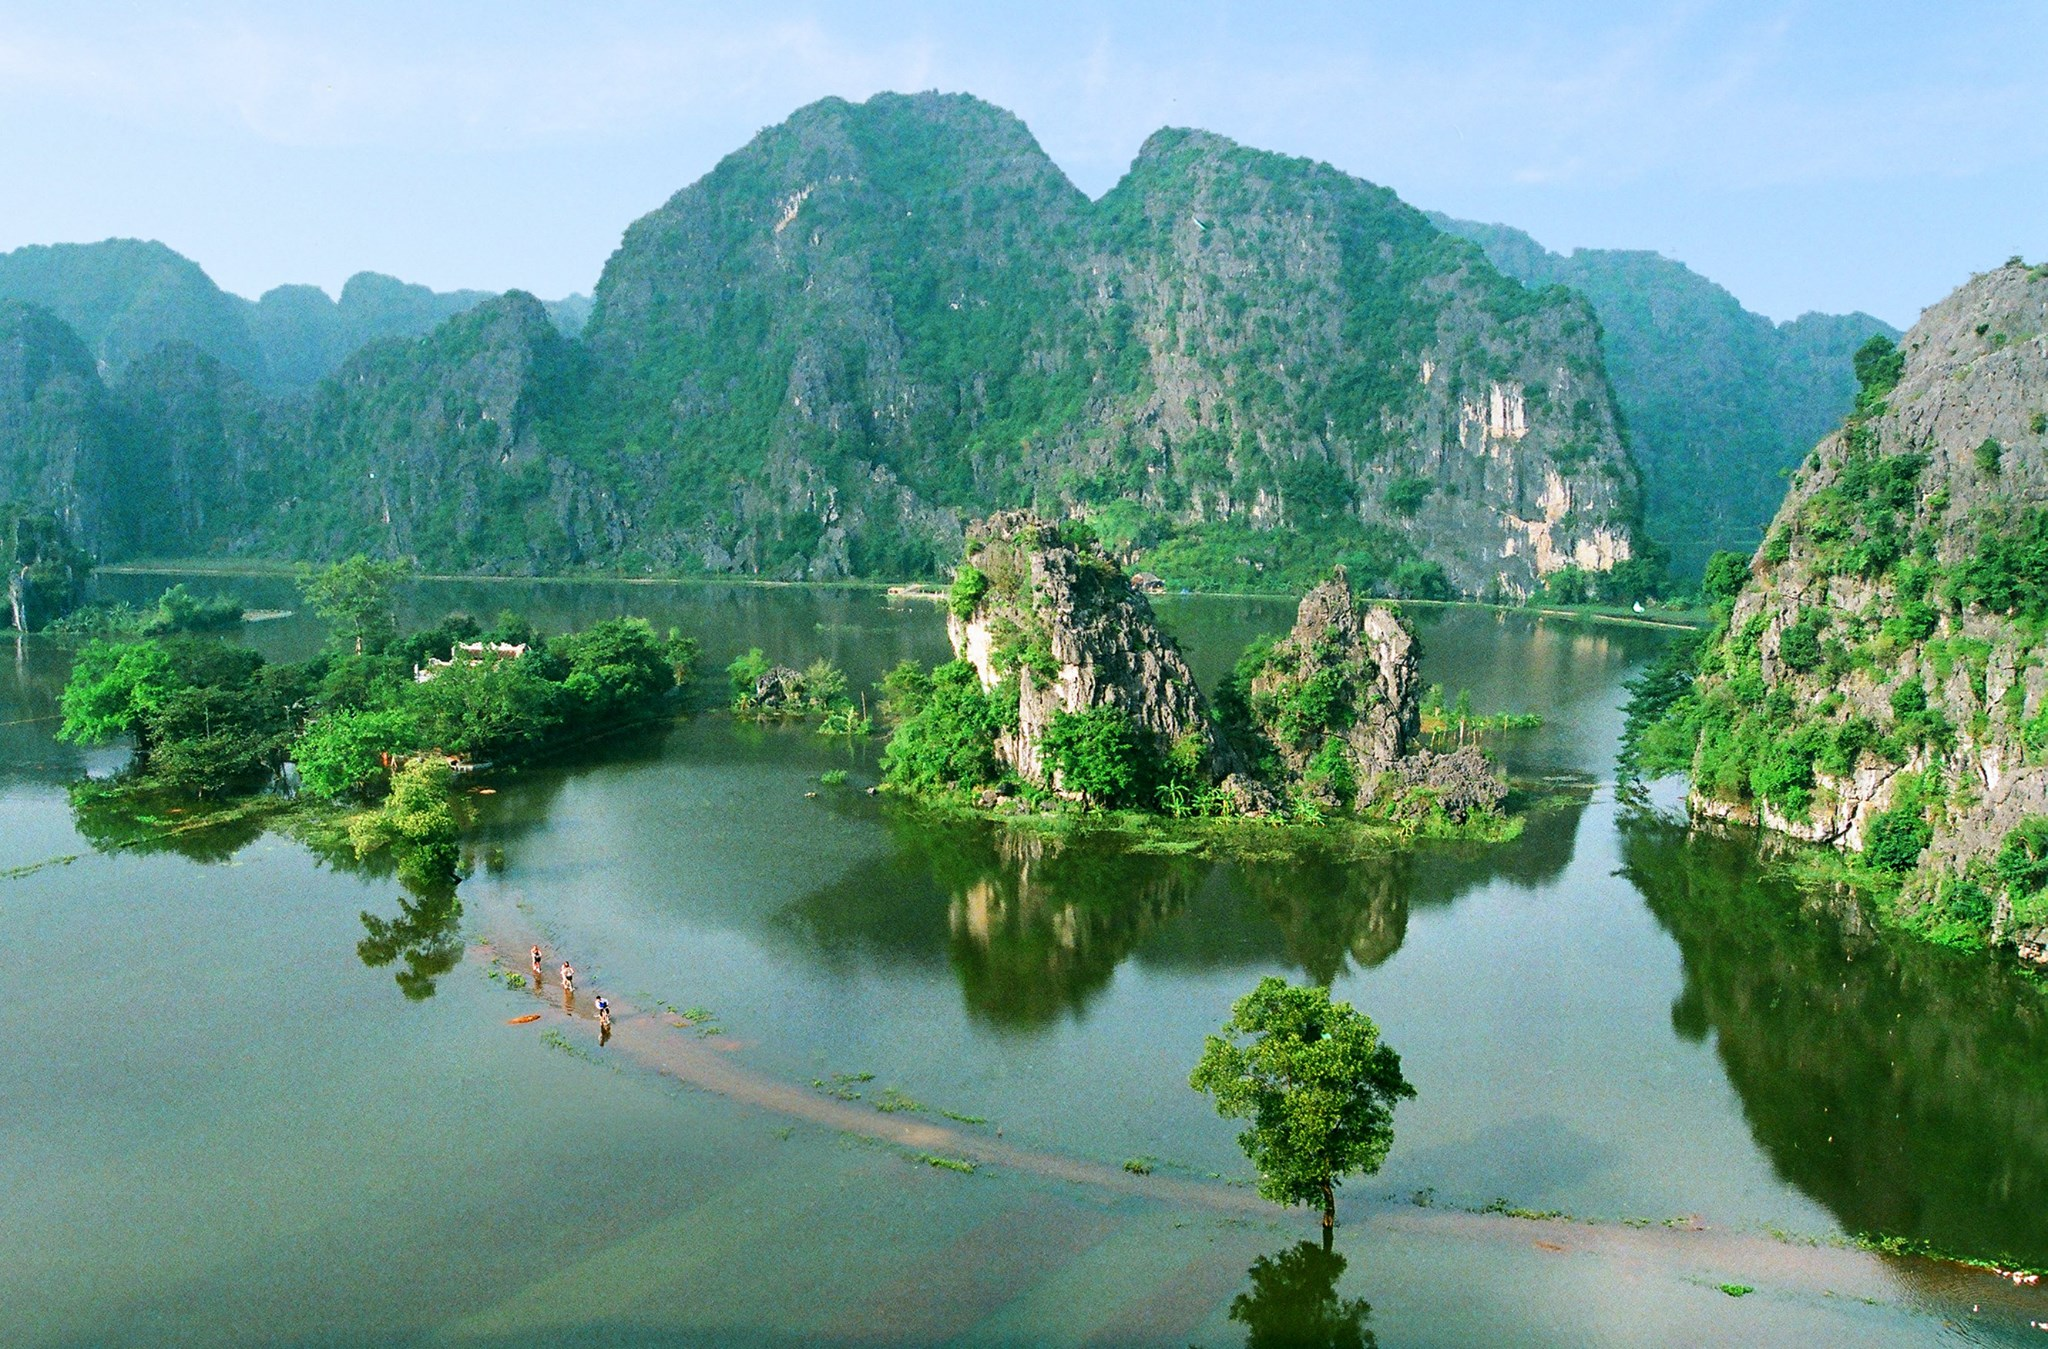 from Sapa, Halong to Ninh binh